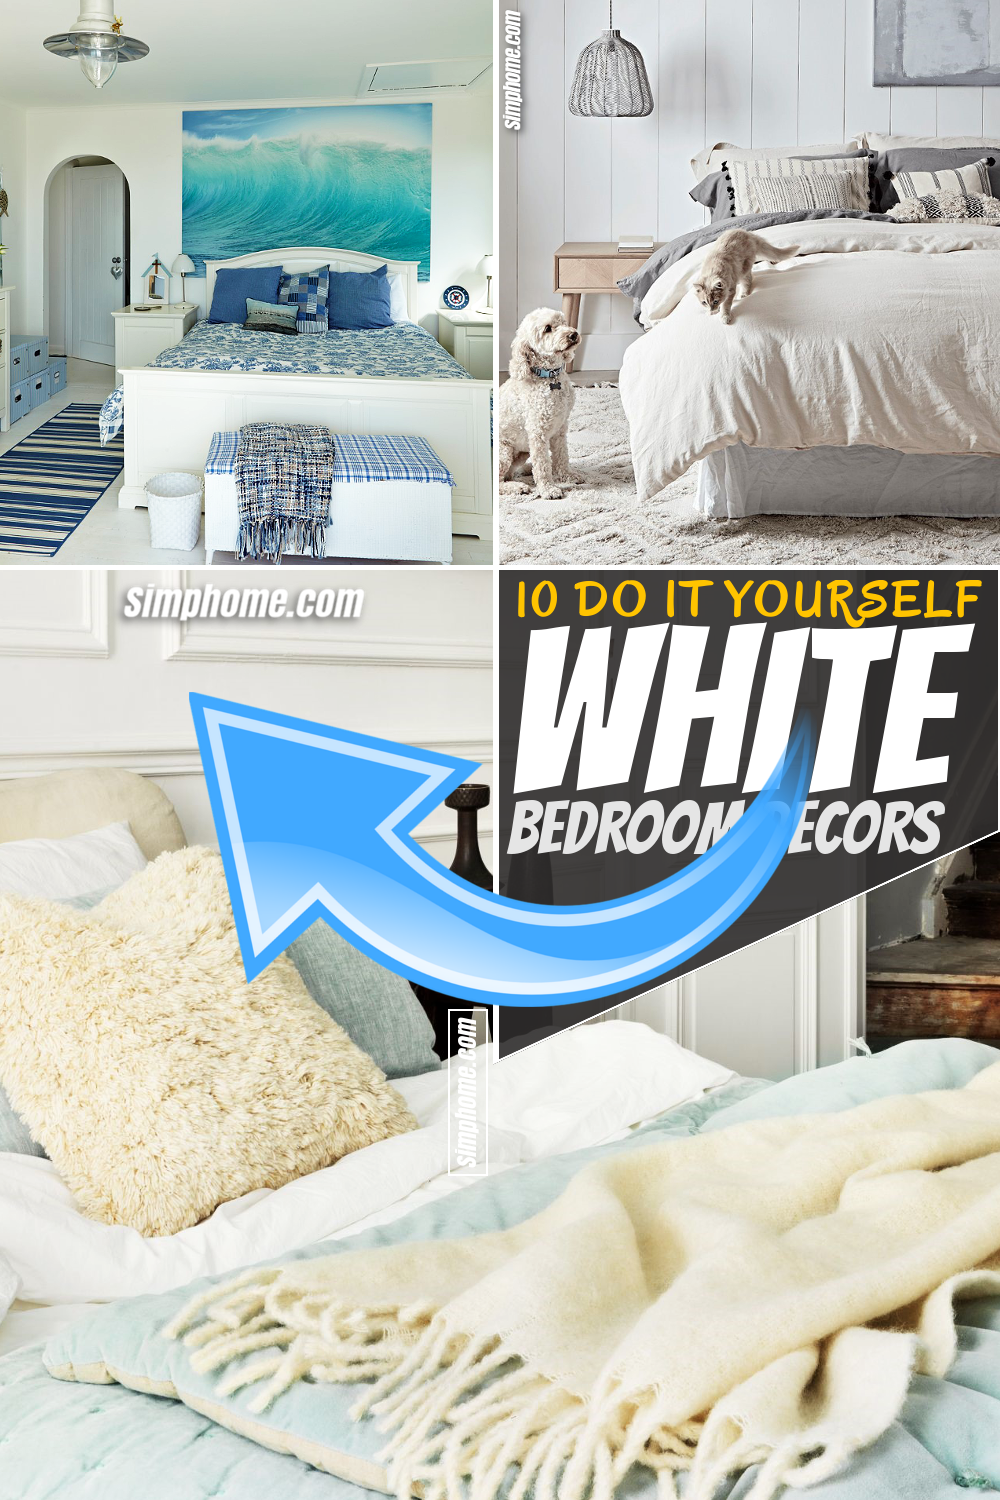 Simphome.com 10 Decor Ideas that spruce up your white bedroom Pinterest Featured